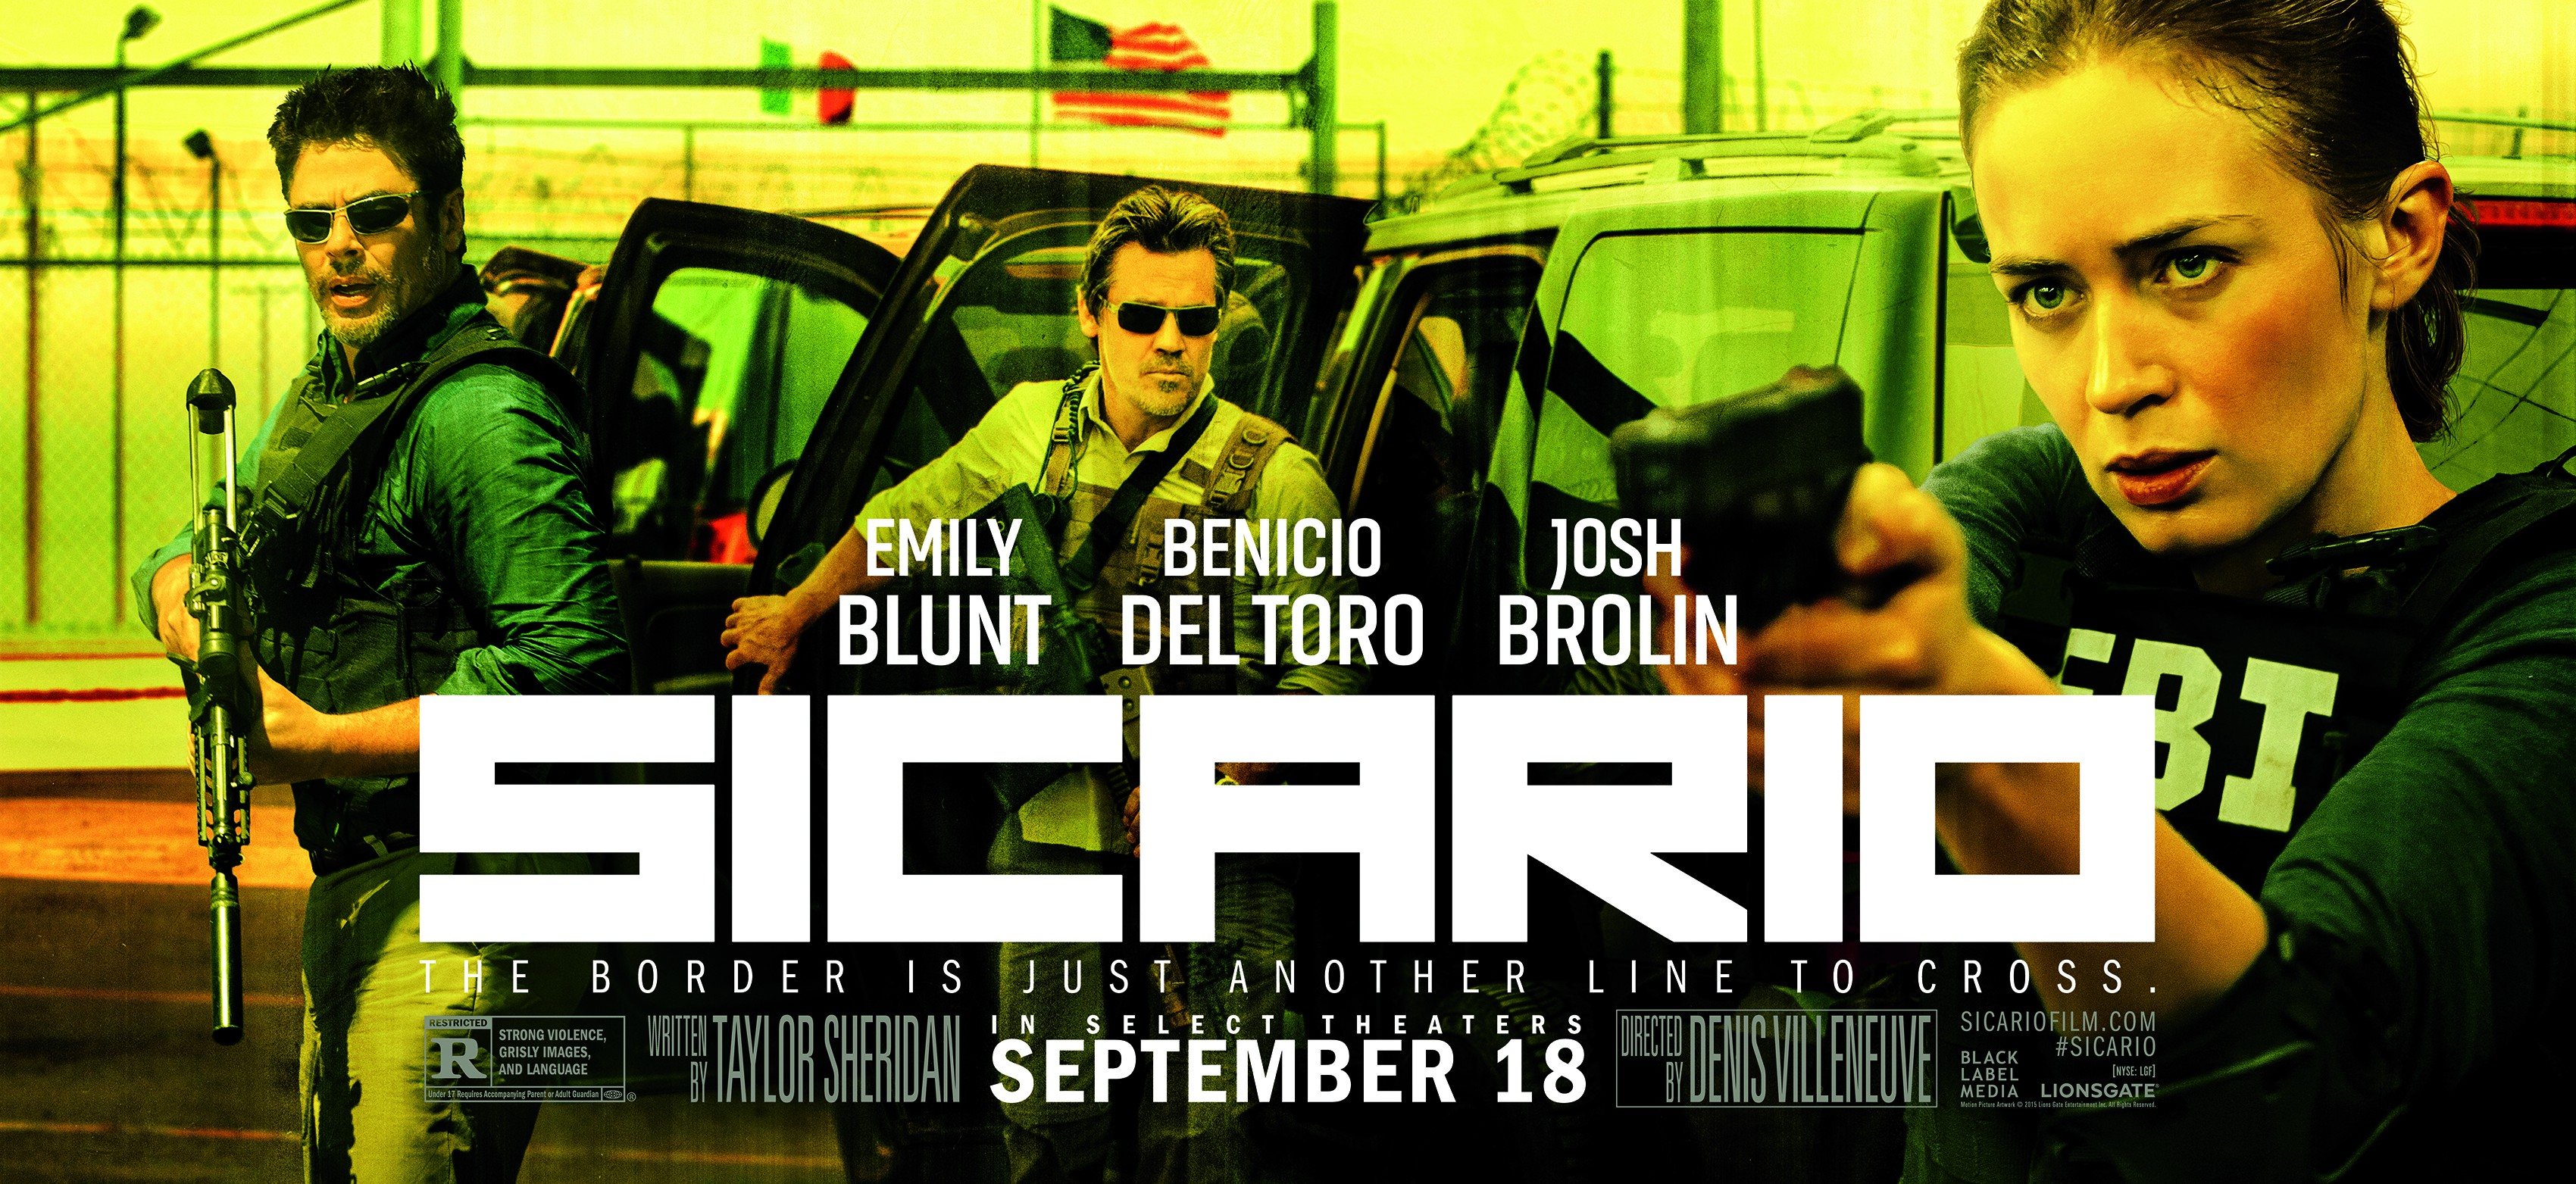 Sicario (2015) Review - Matt Calamia - Medium